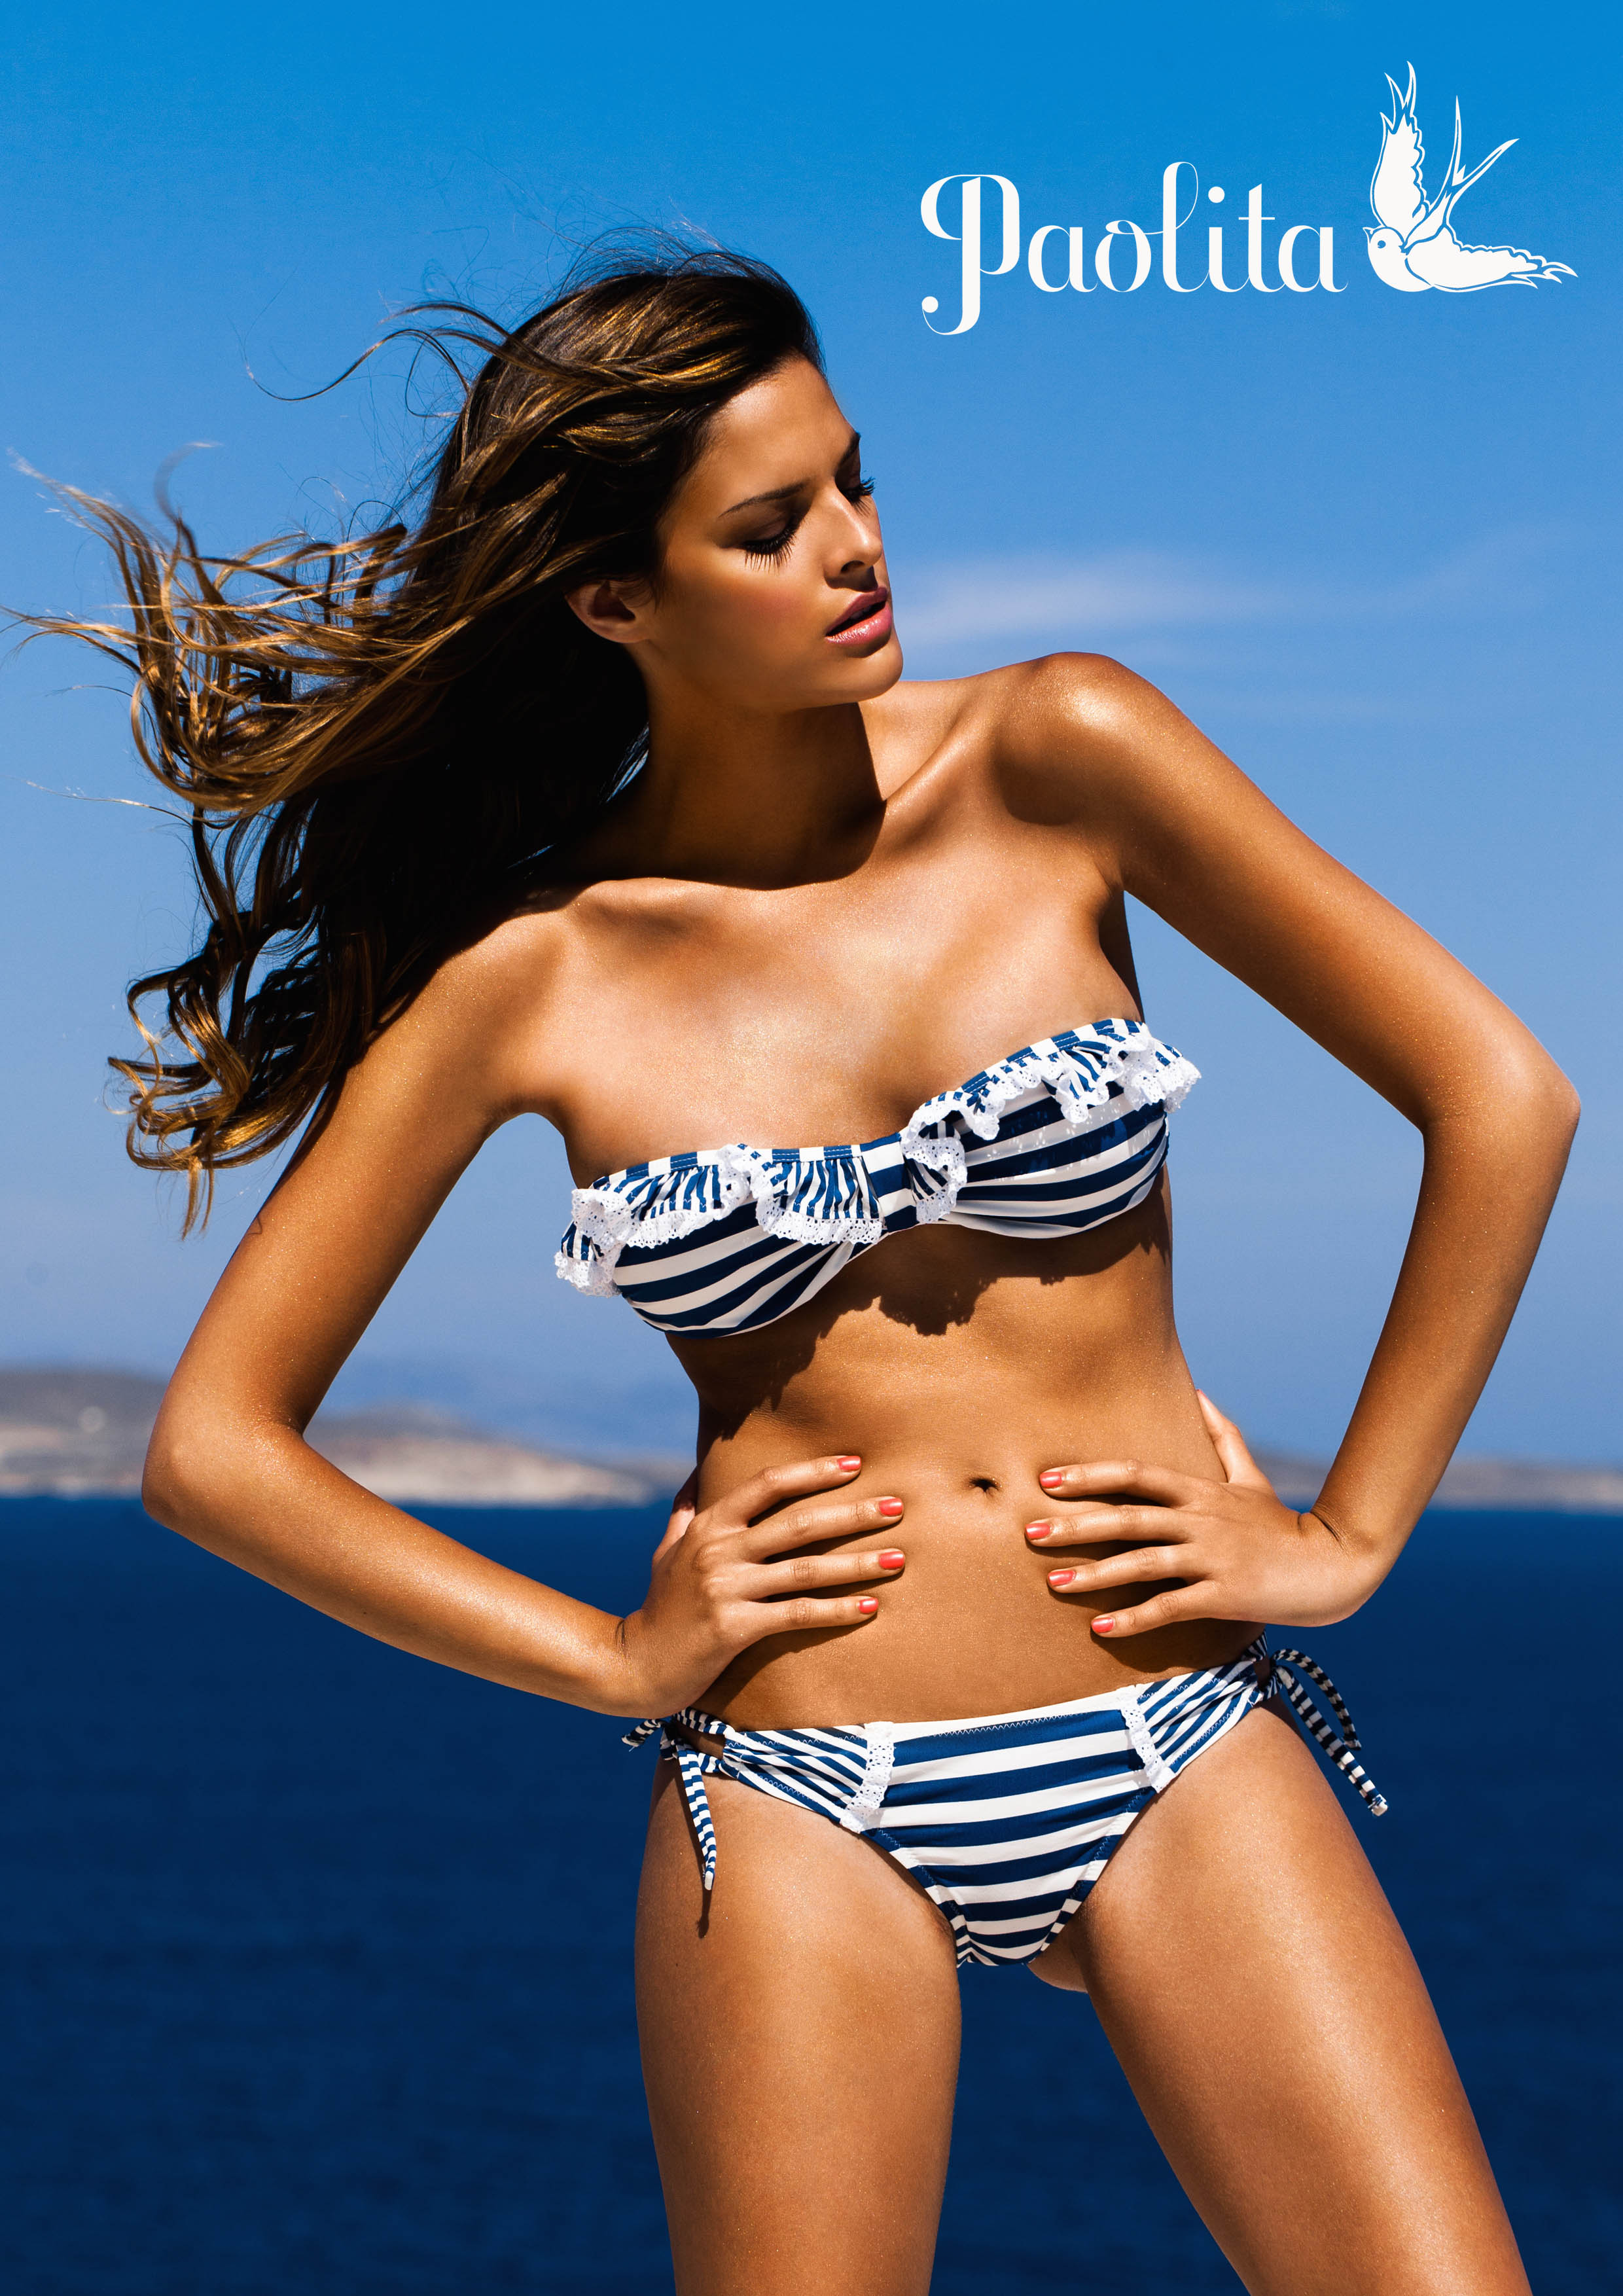 Paolita Luxury Swimwear